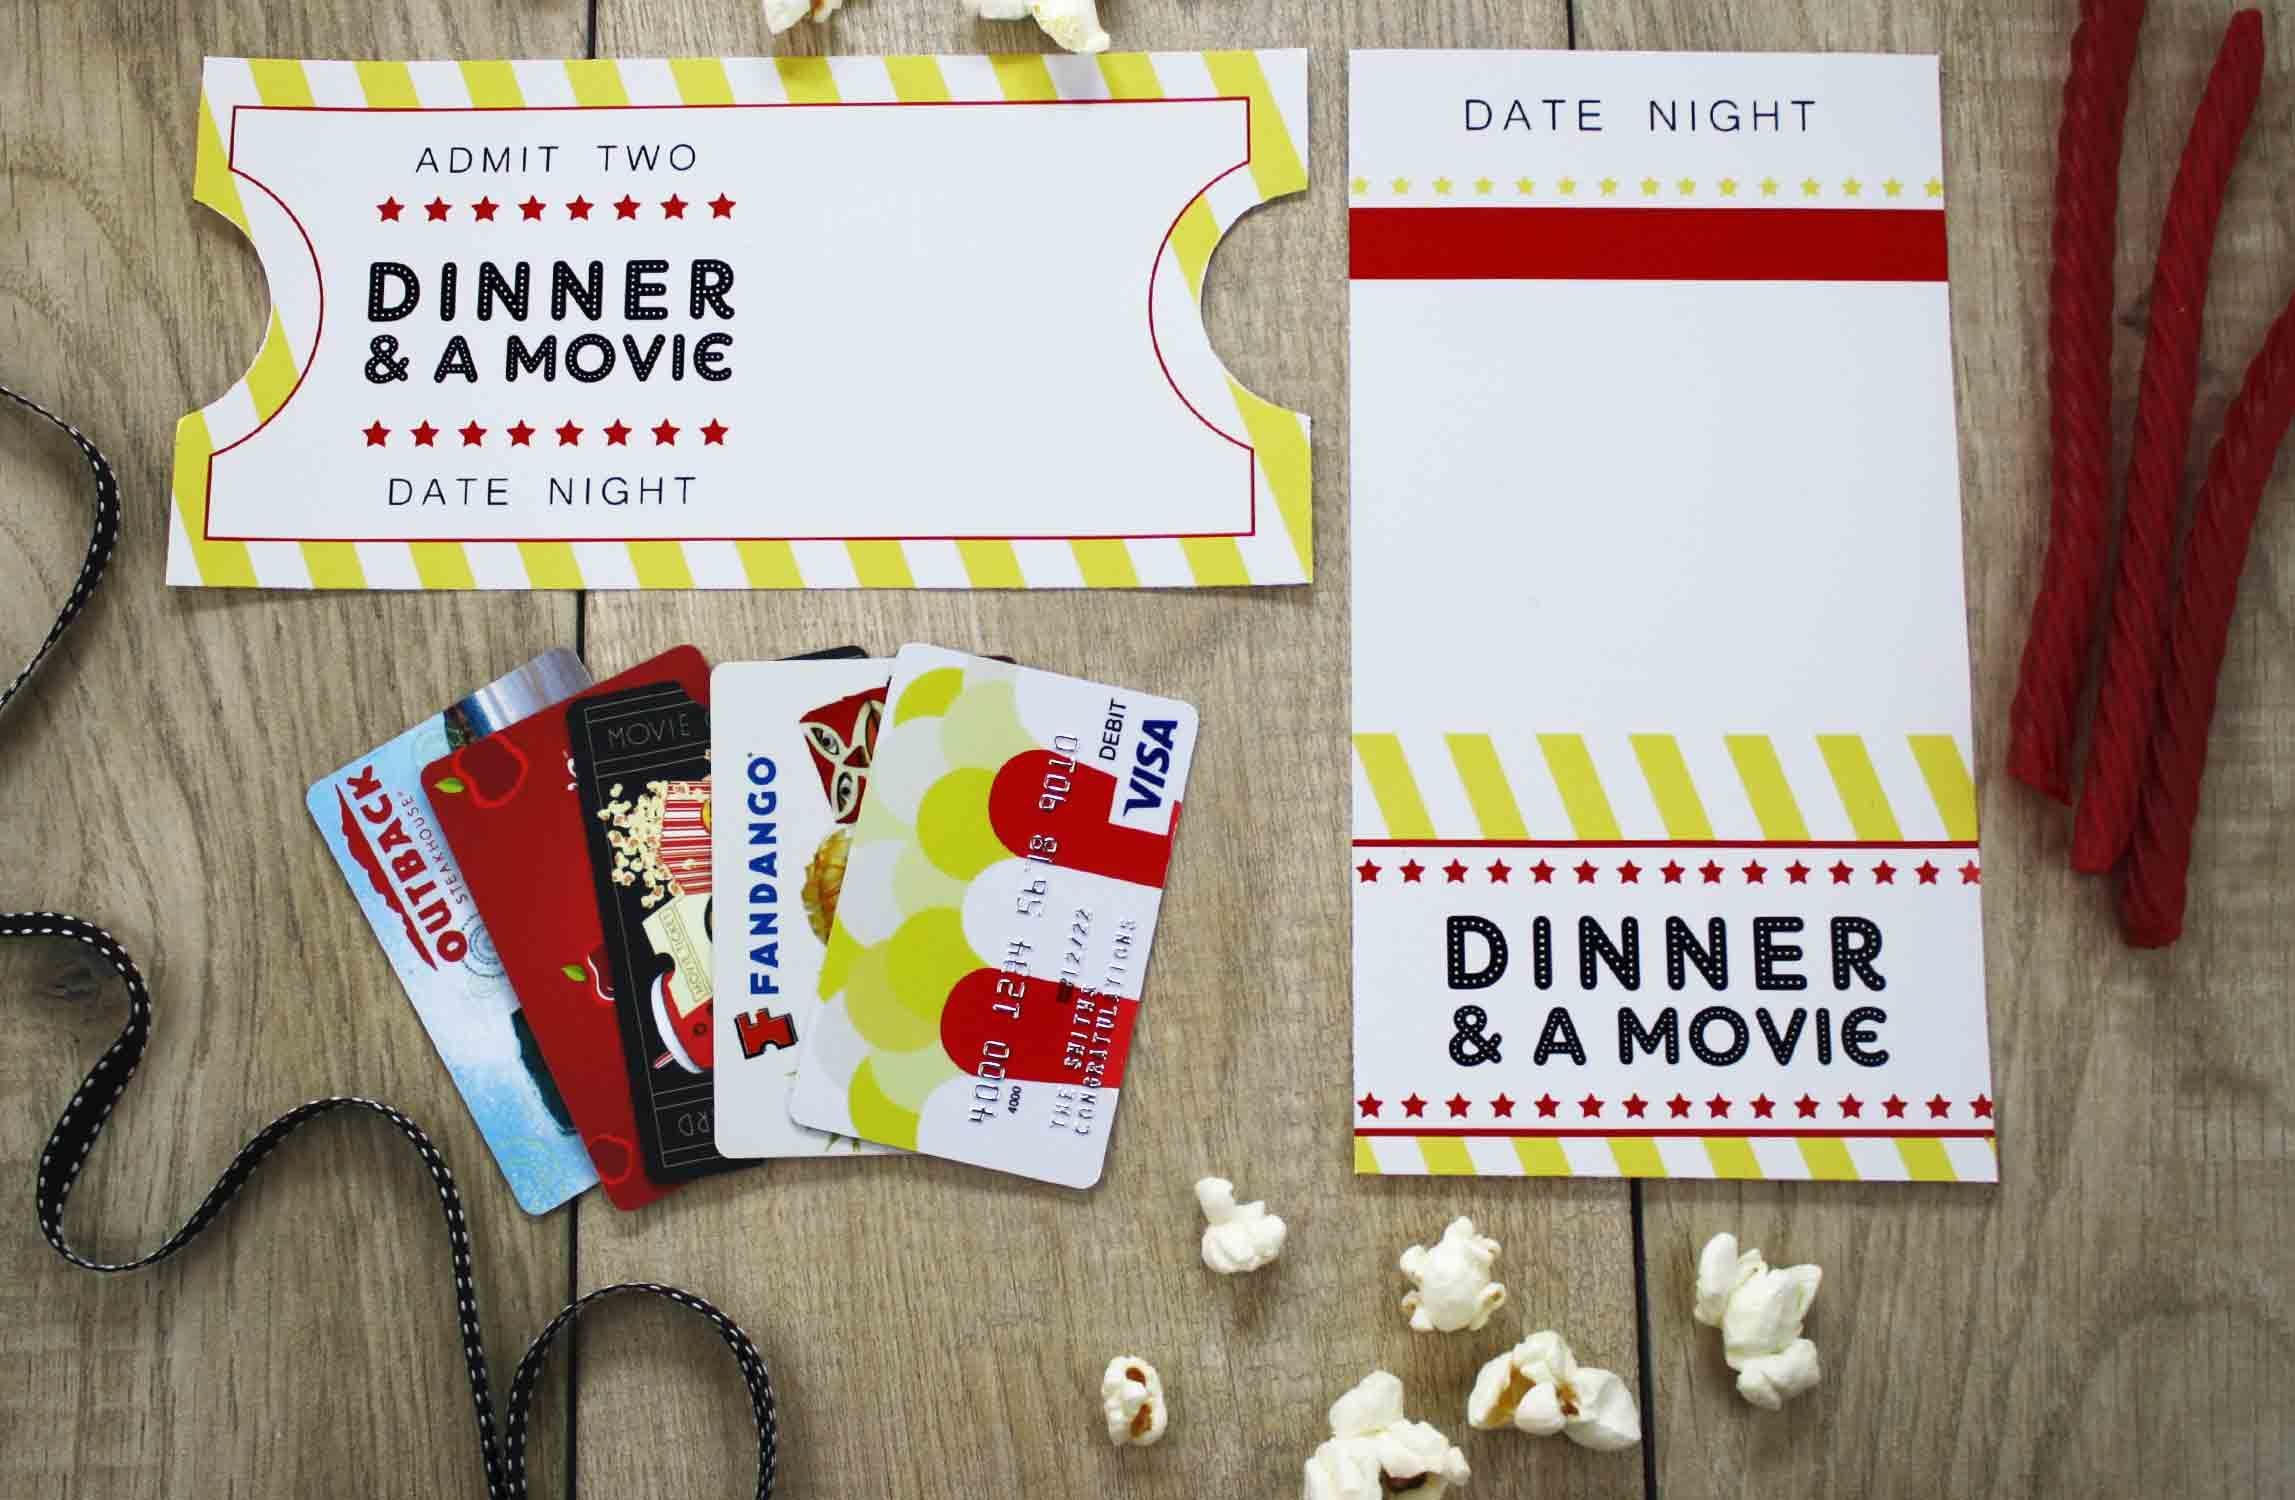 Wedding Date Gift Ideas: {Free Printable} Give DATE NIGHT For A Wedding Gift